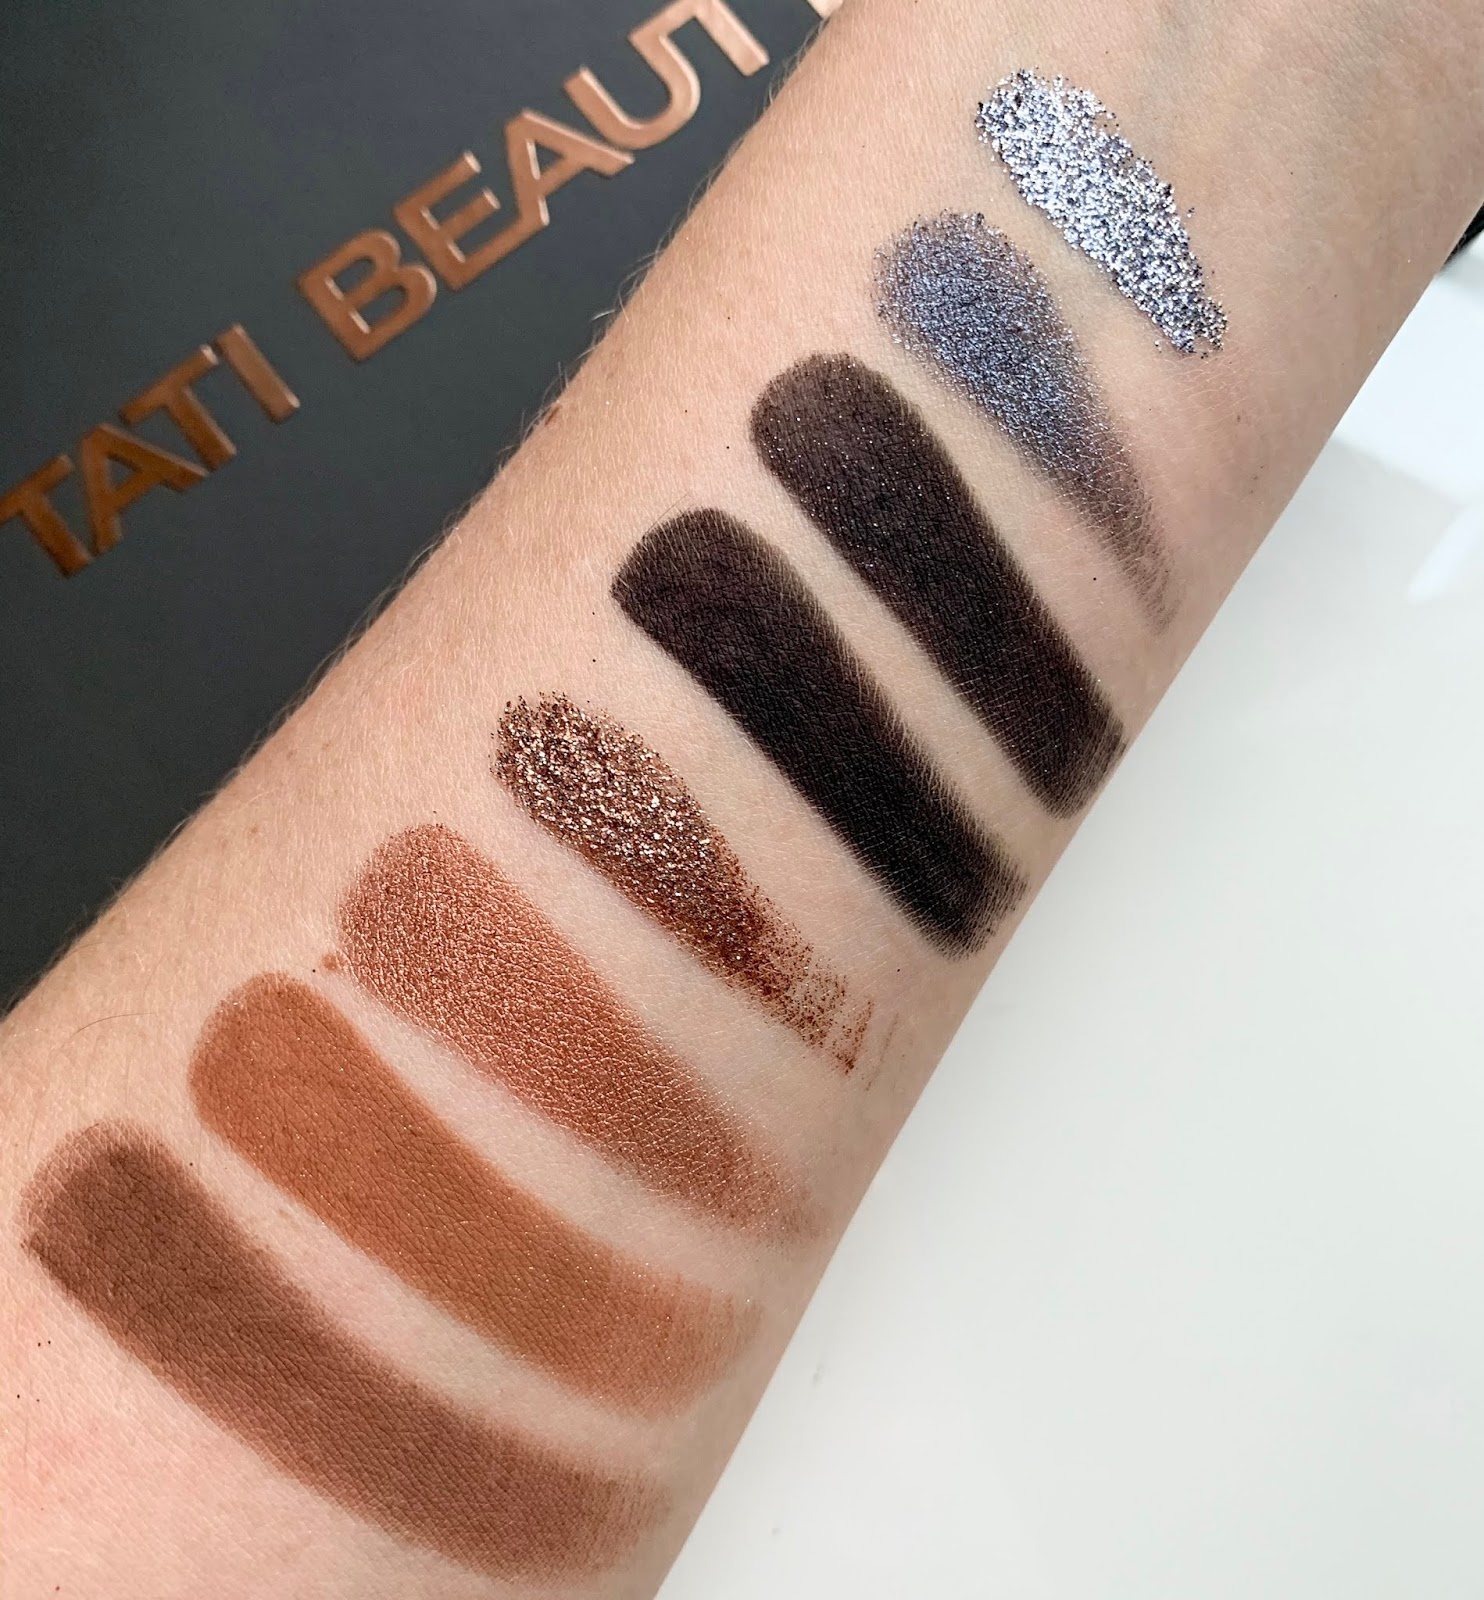 Tati-beauty-palette-swatches